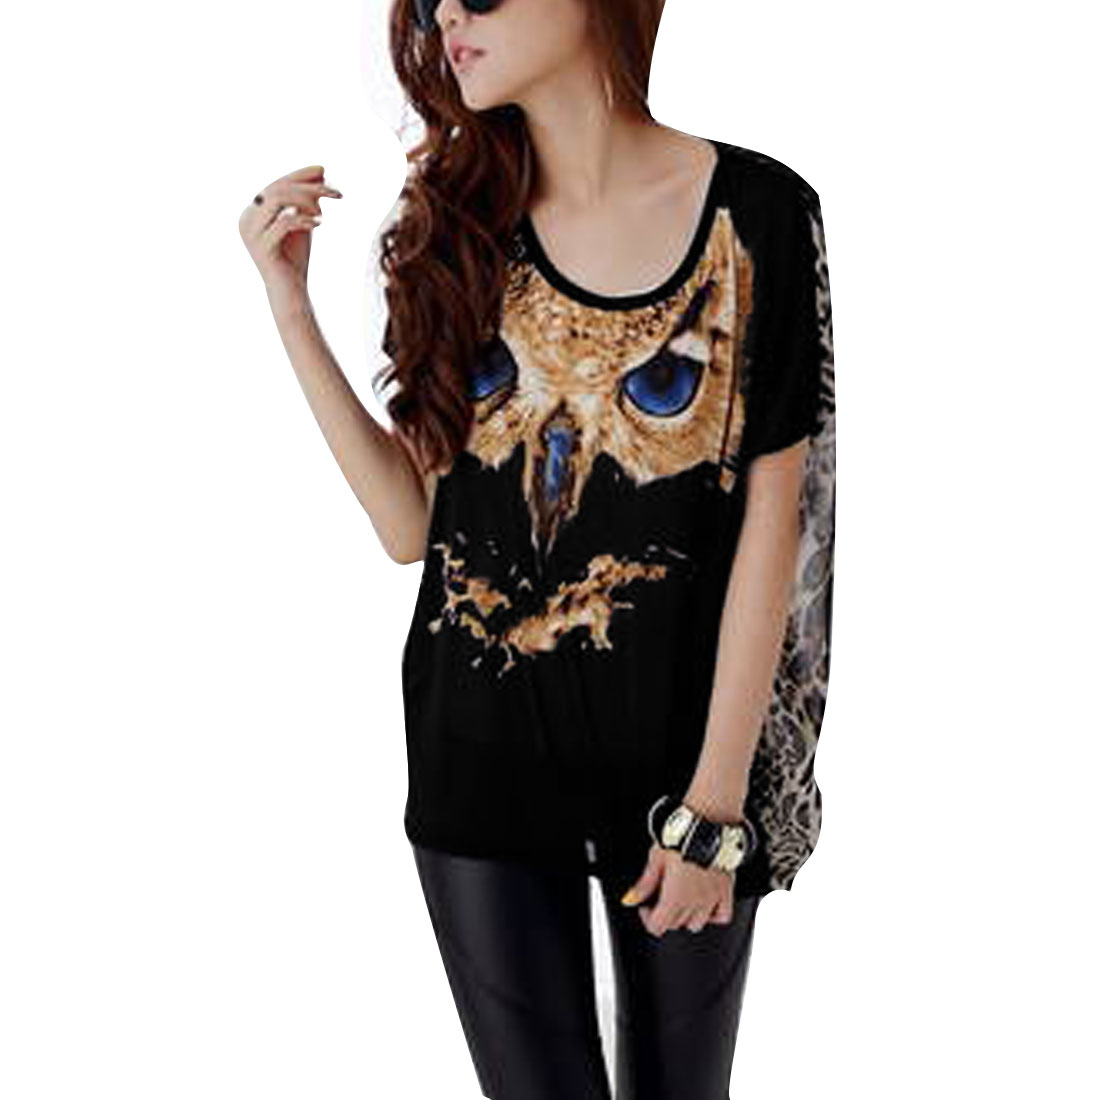 Woman New Fashion Round Neck Short Dolman Sleeve Black Splice Shirt M